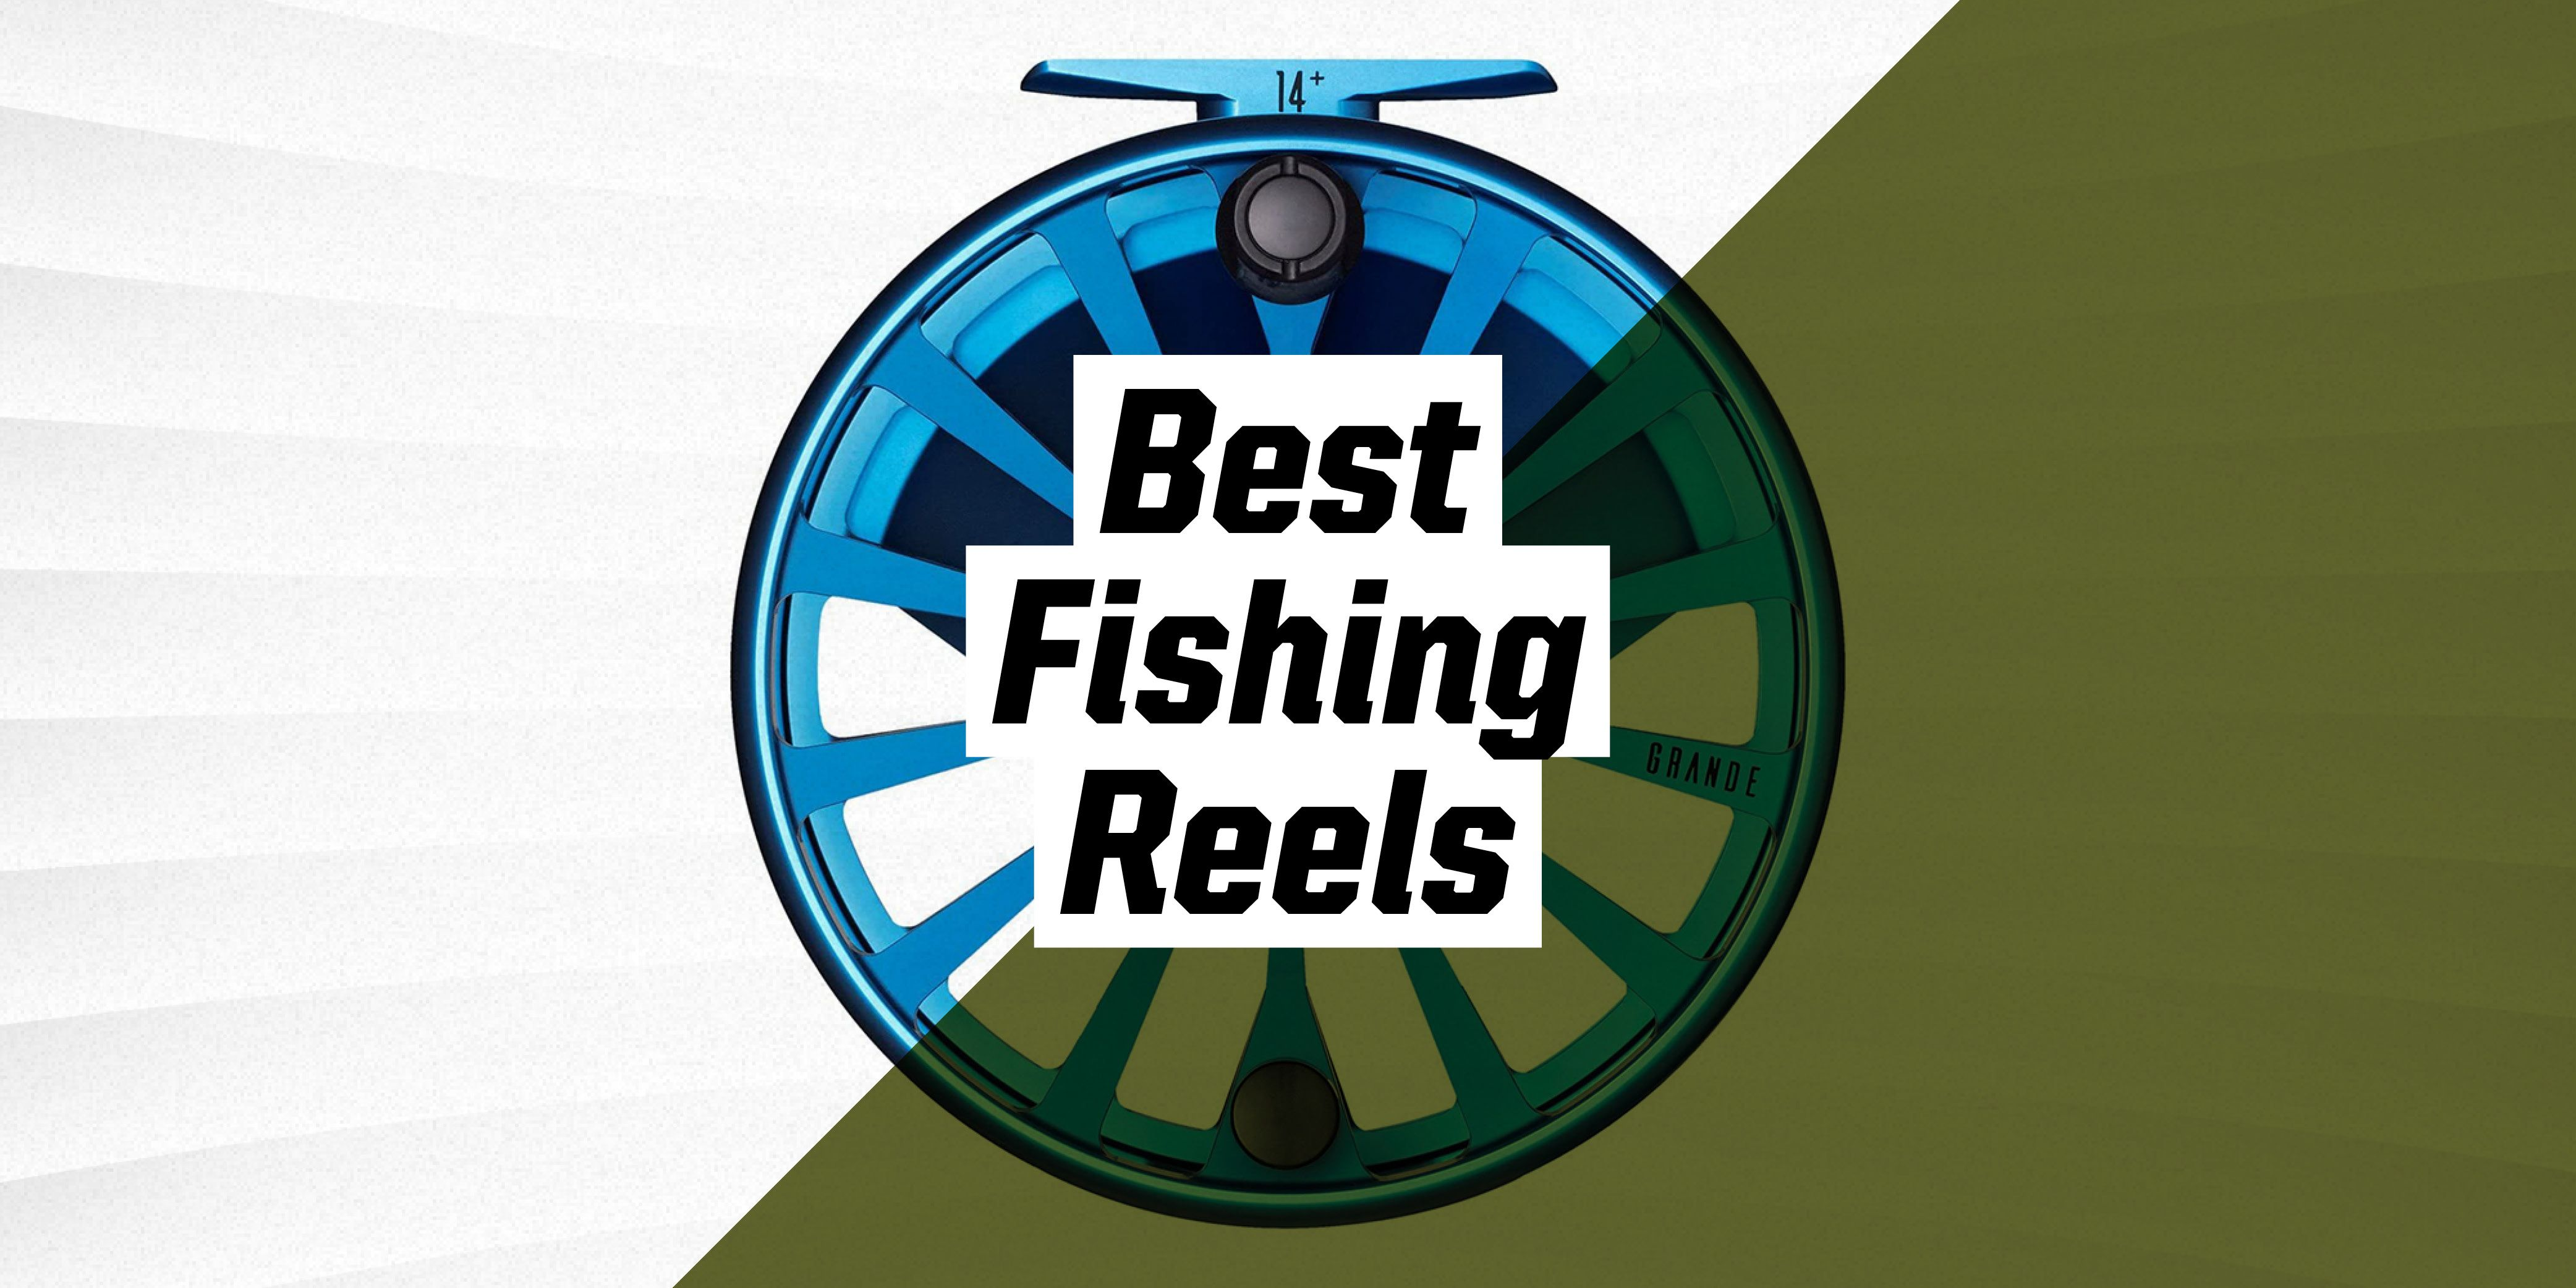 Land a Trophy With These Expert-Approved Fishing Reels